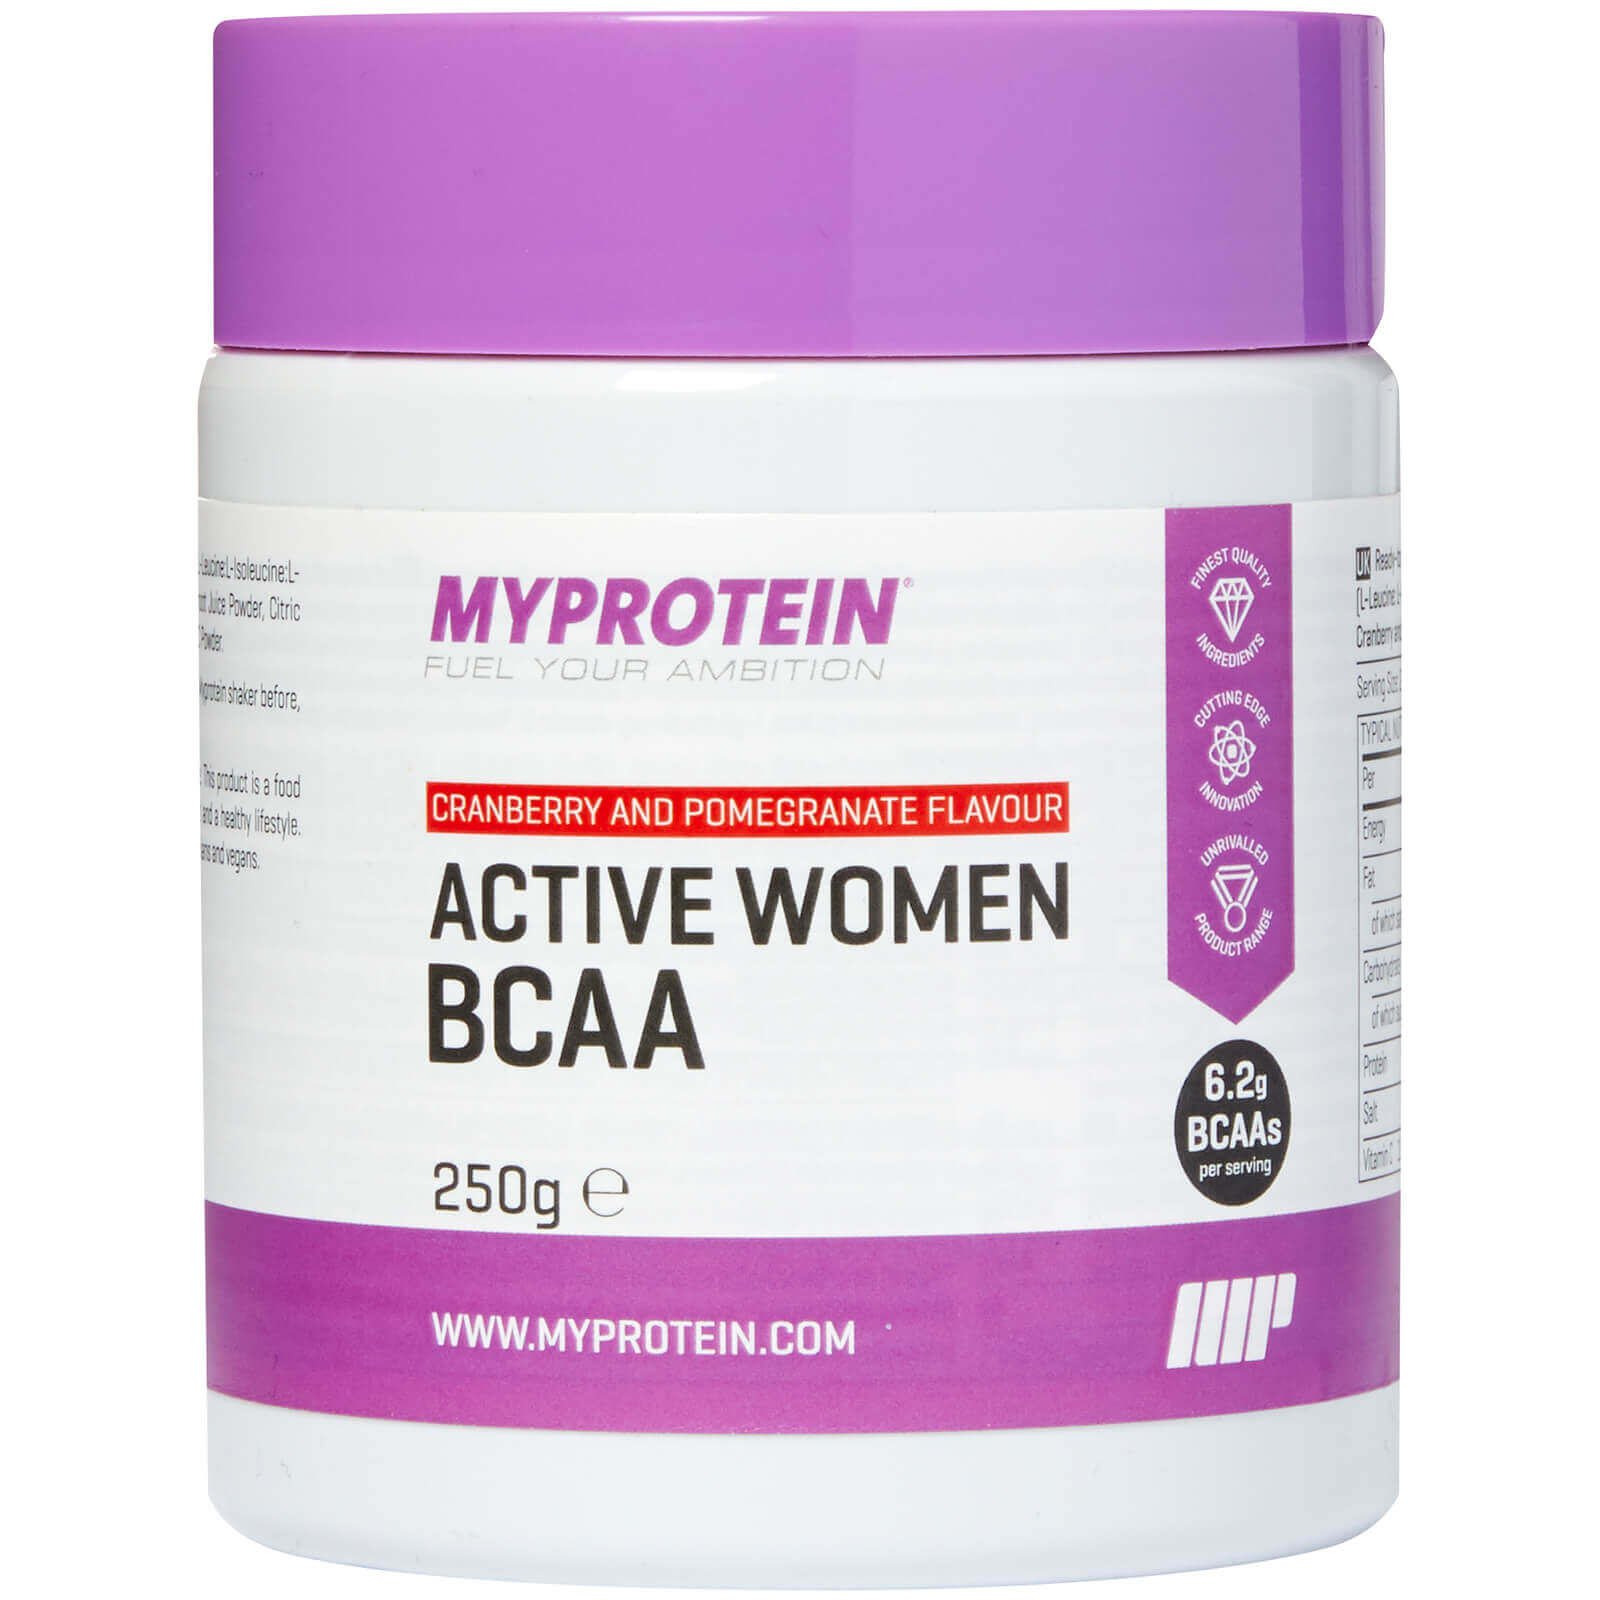 Active Women BCAA